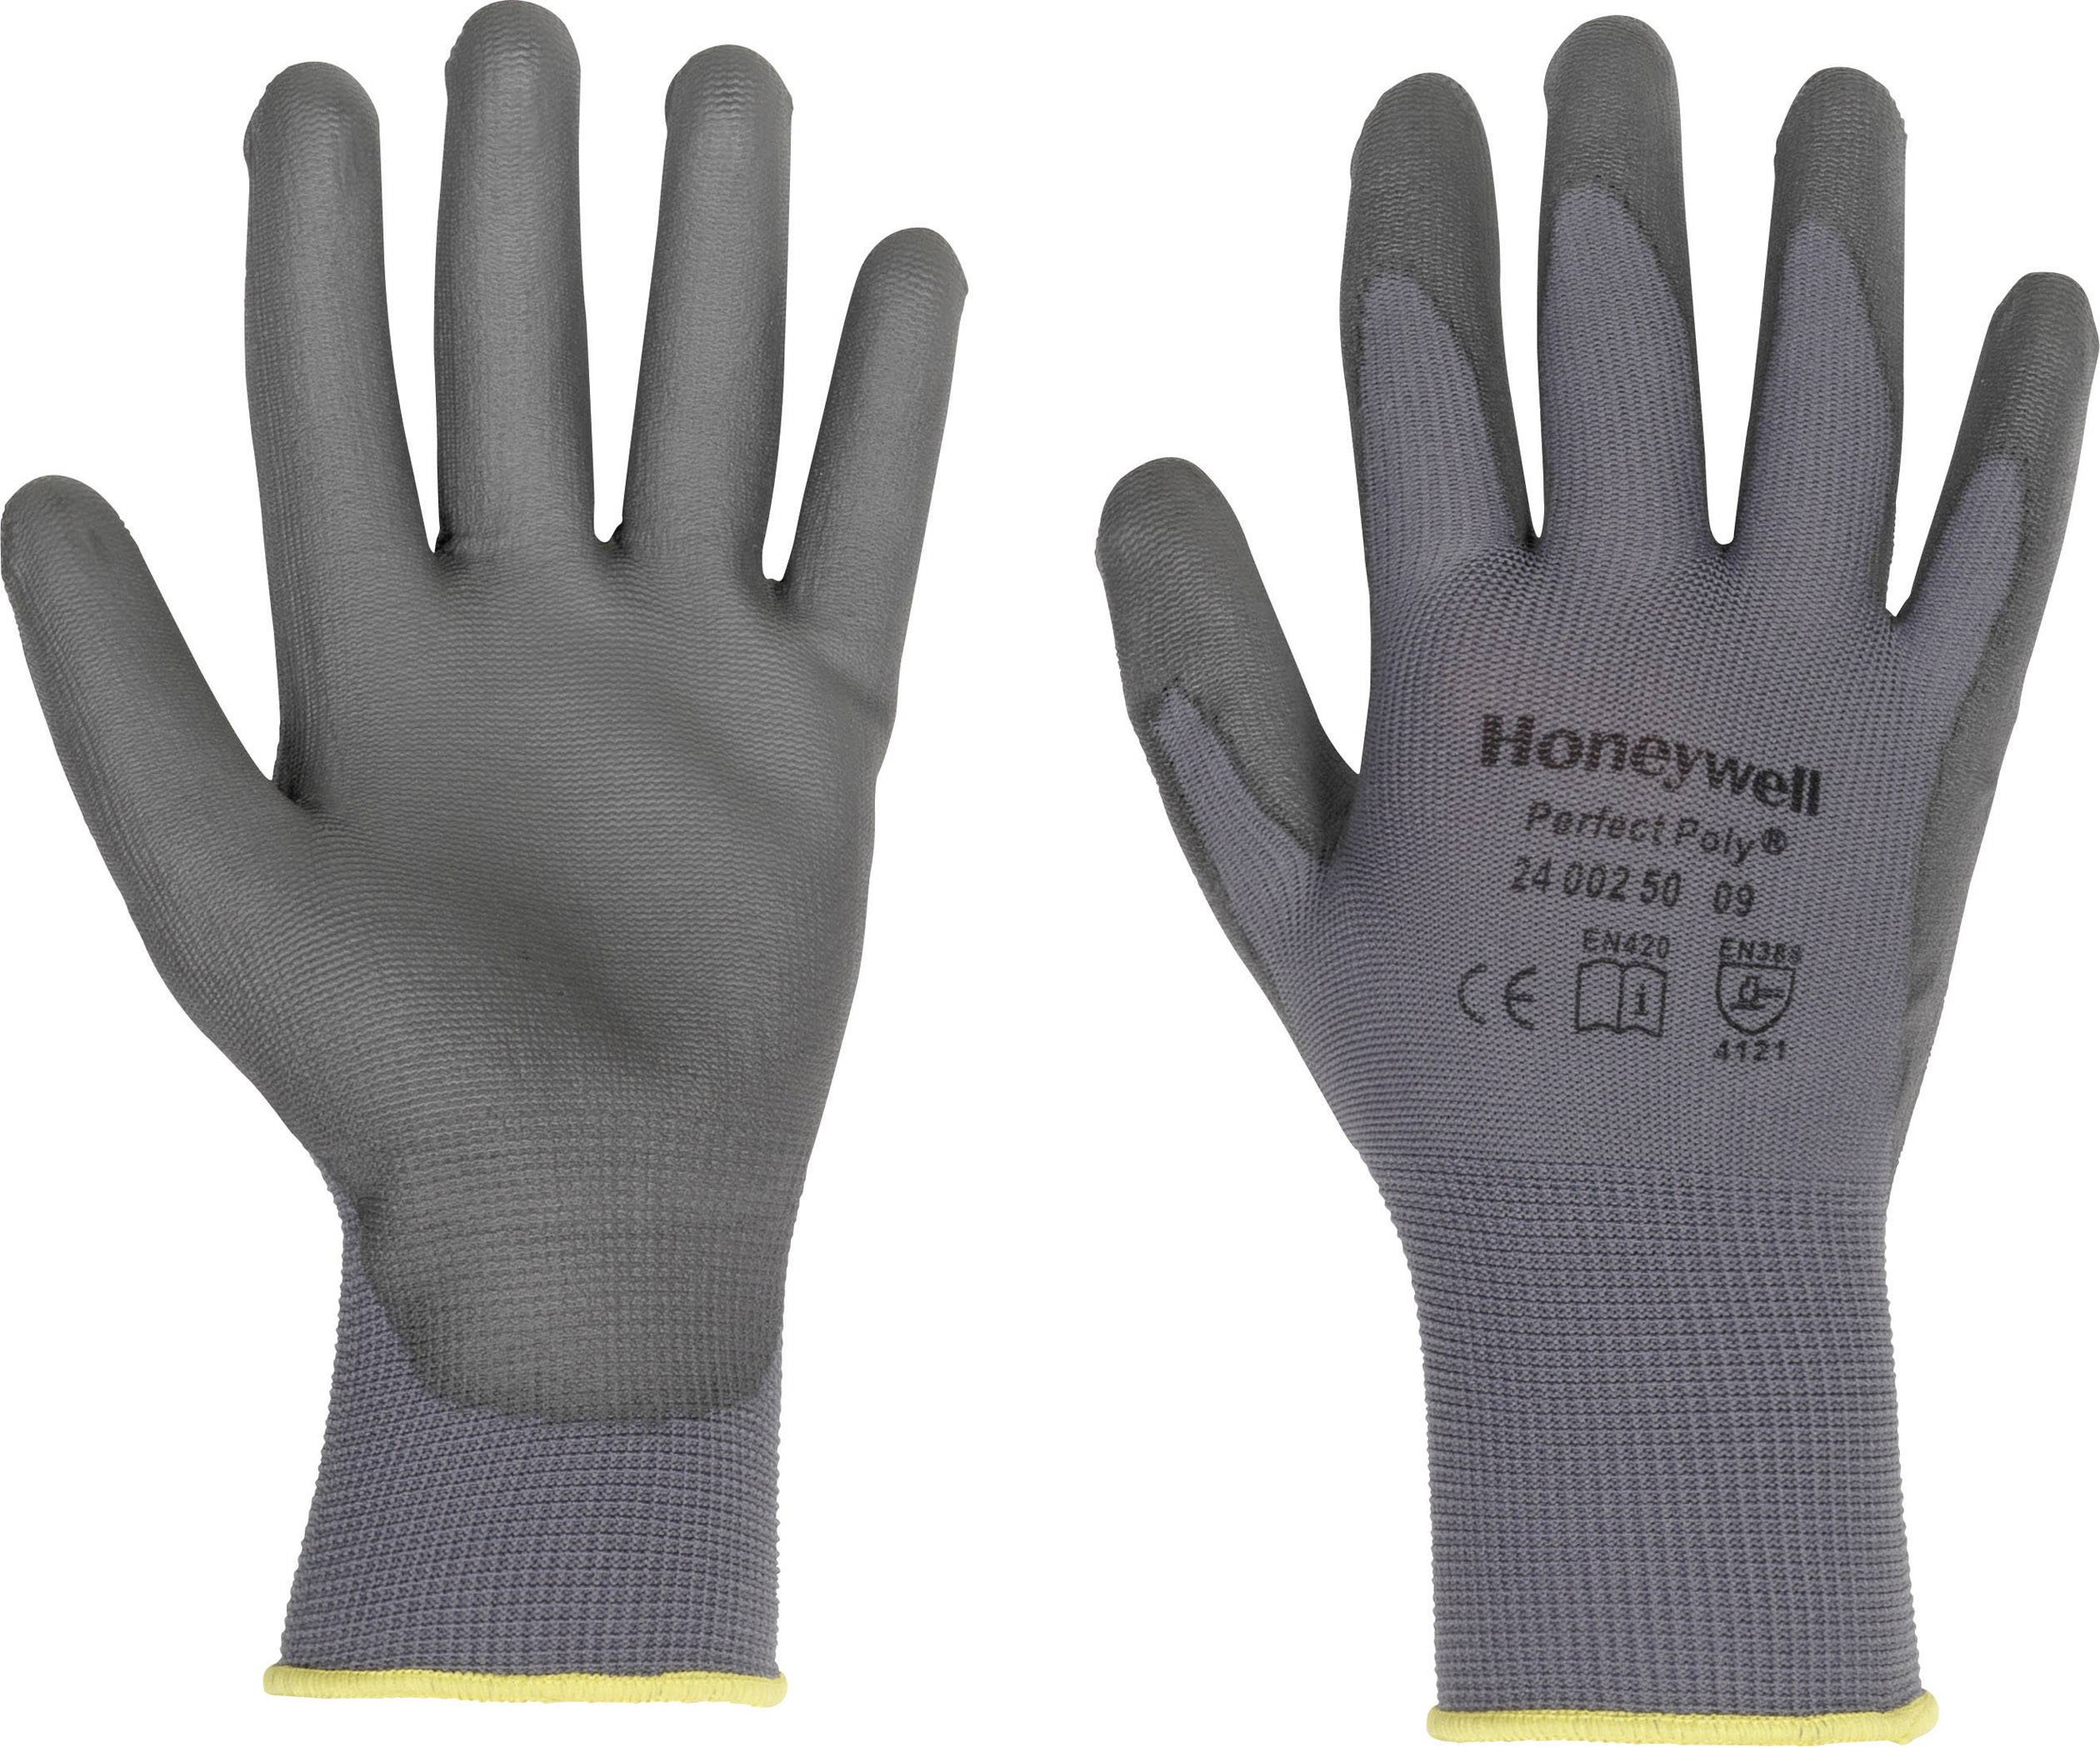 Pracovné rukavice Perfect Fit GANTS GRIS PERFECTPOLY 2400250, velikost rukavic: 10, XL